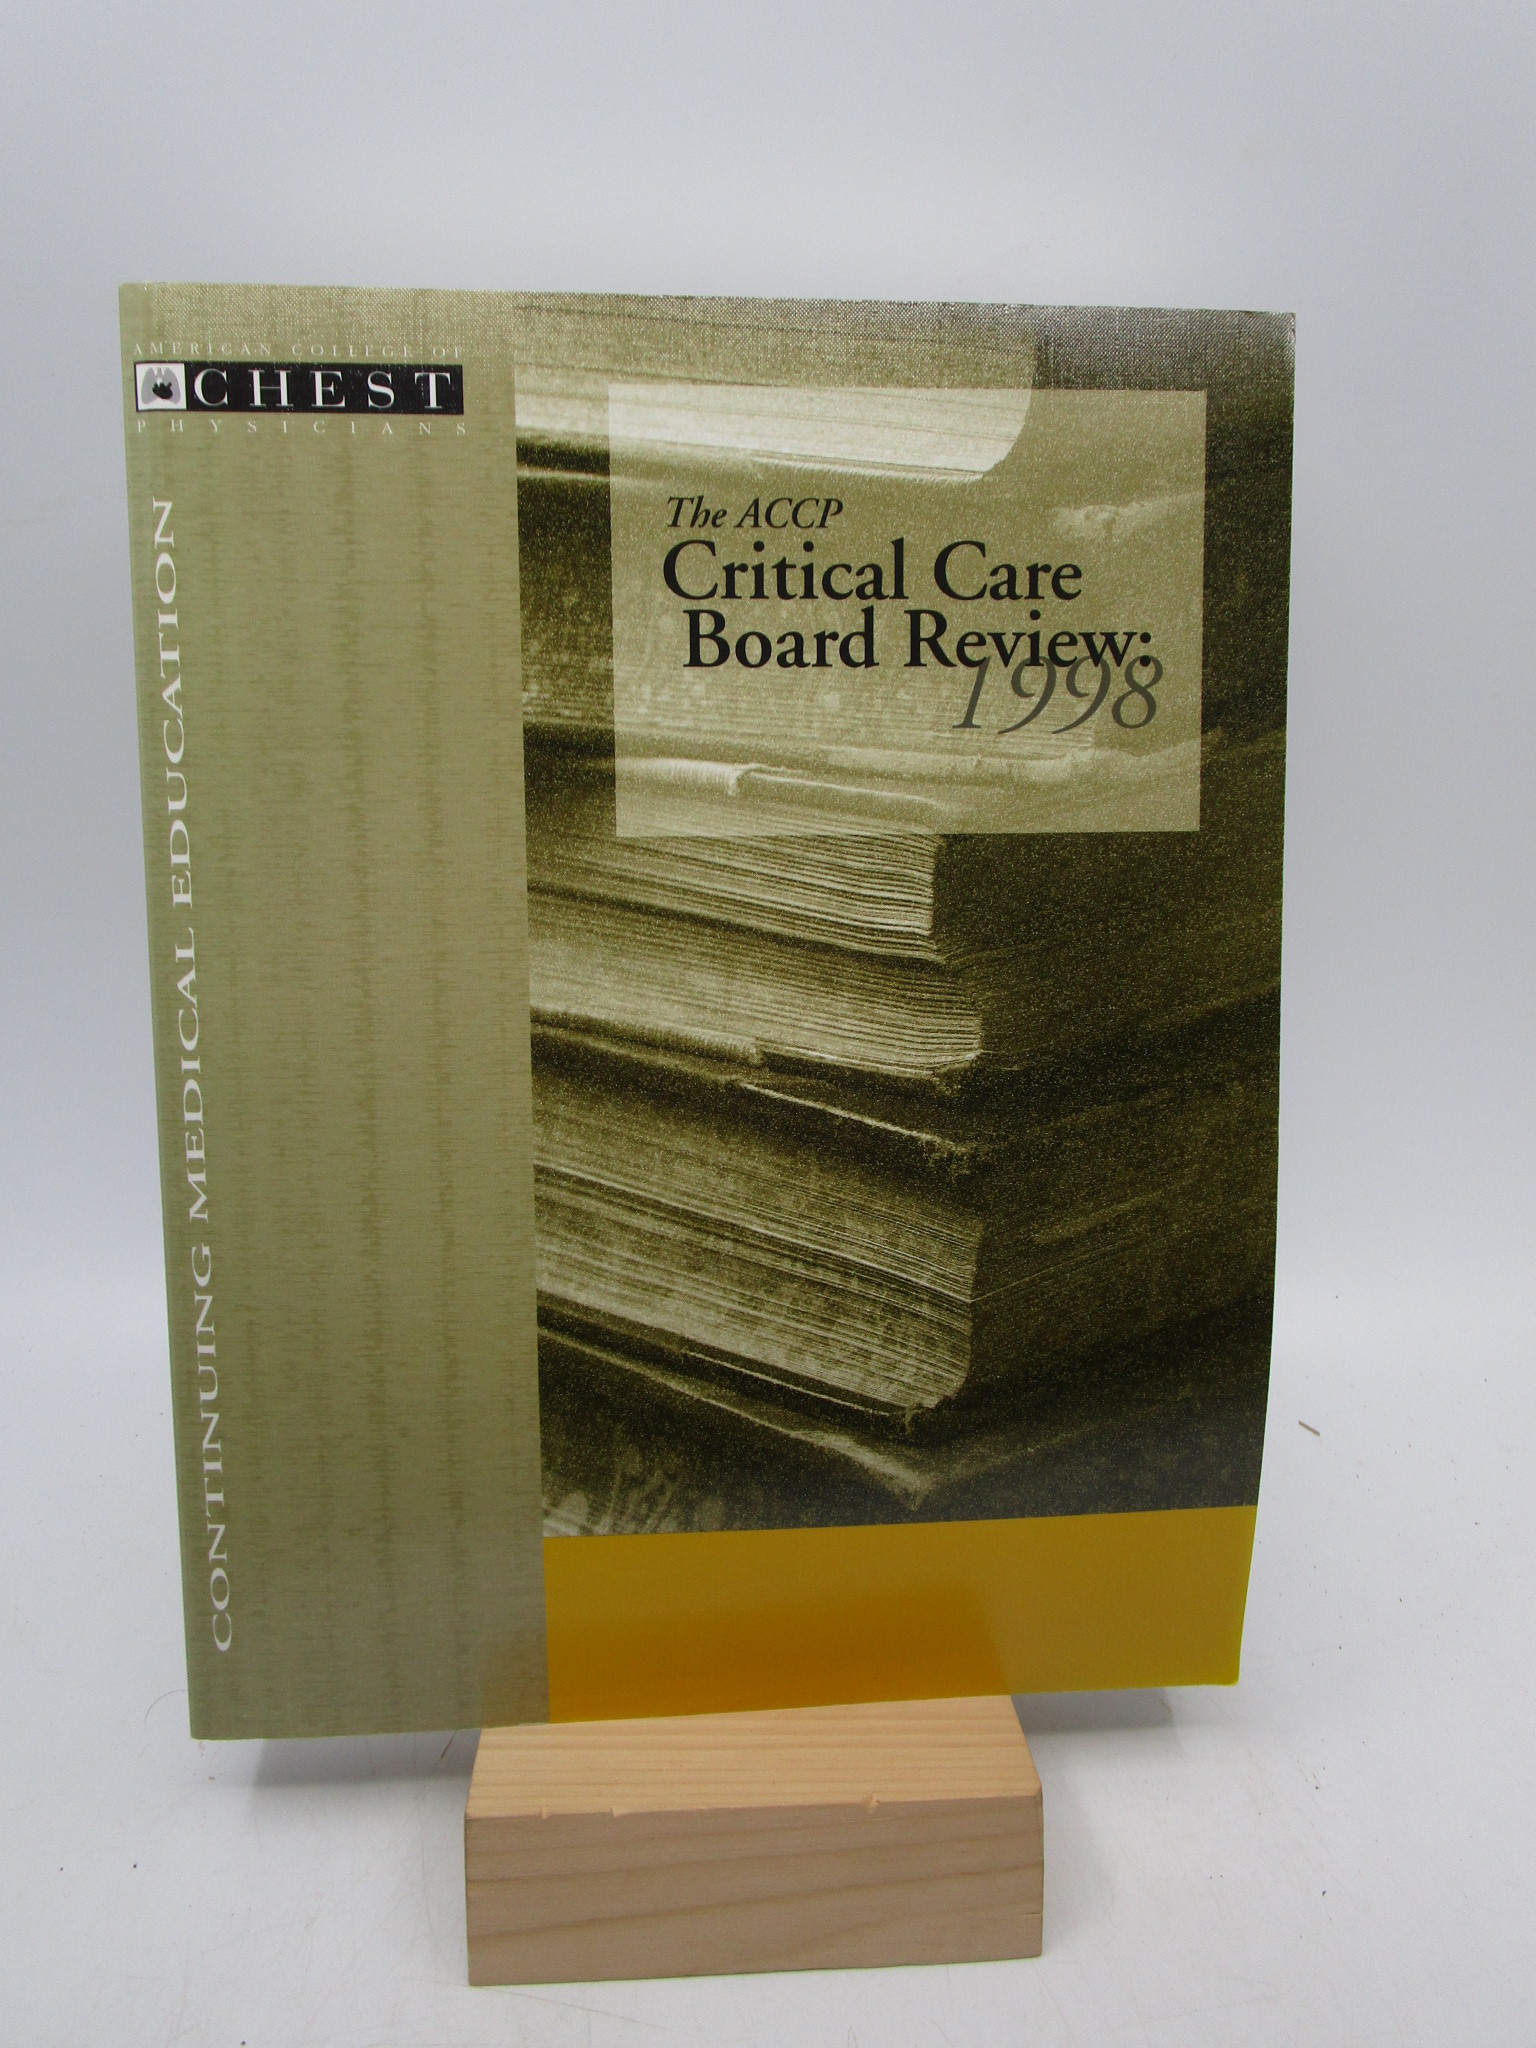 Image for American College of Chest Physicians: Continuing Medical Education: The ACCP Critical Care Board Review 1998 (First Printing)